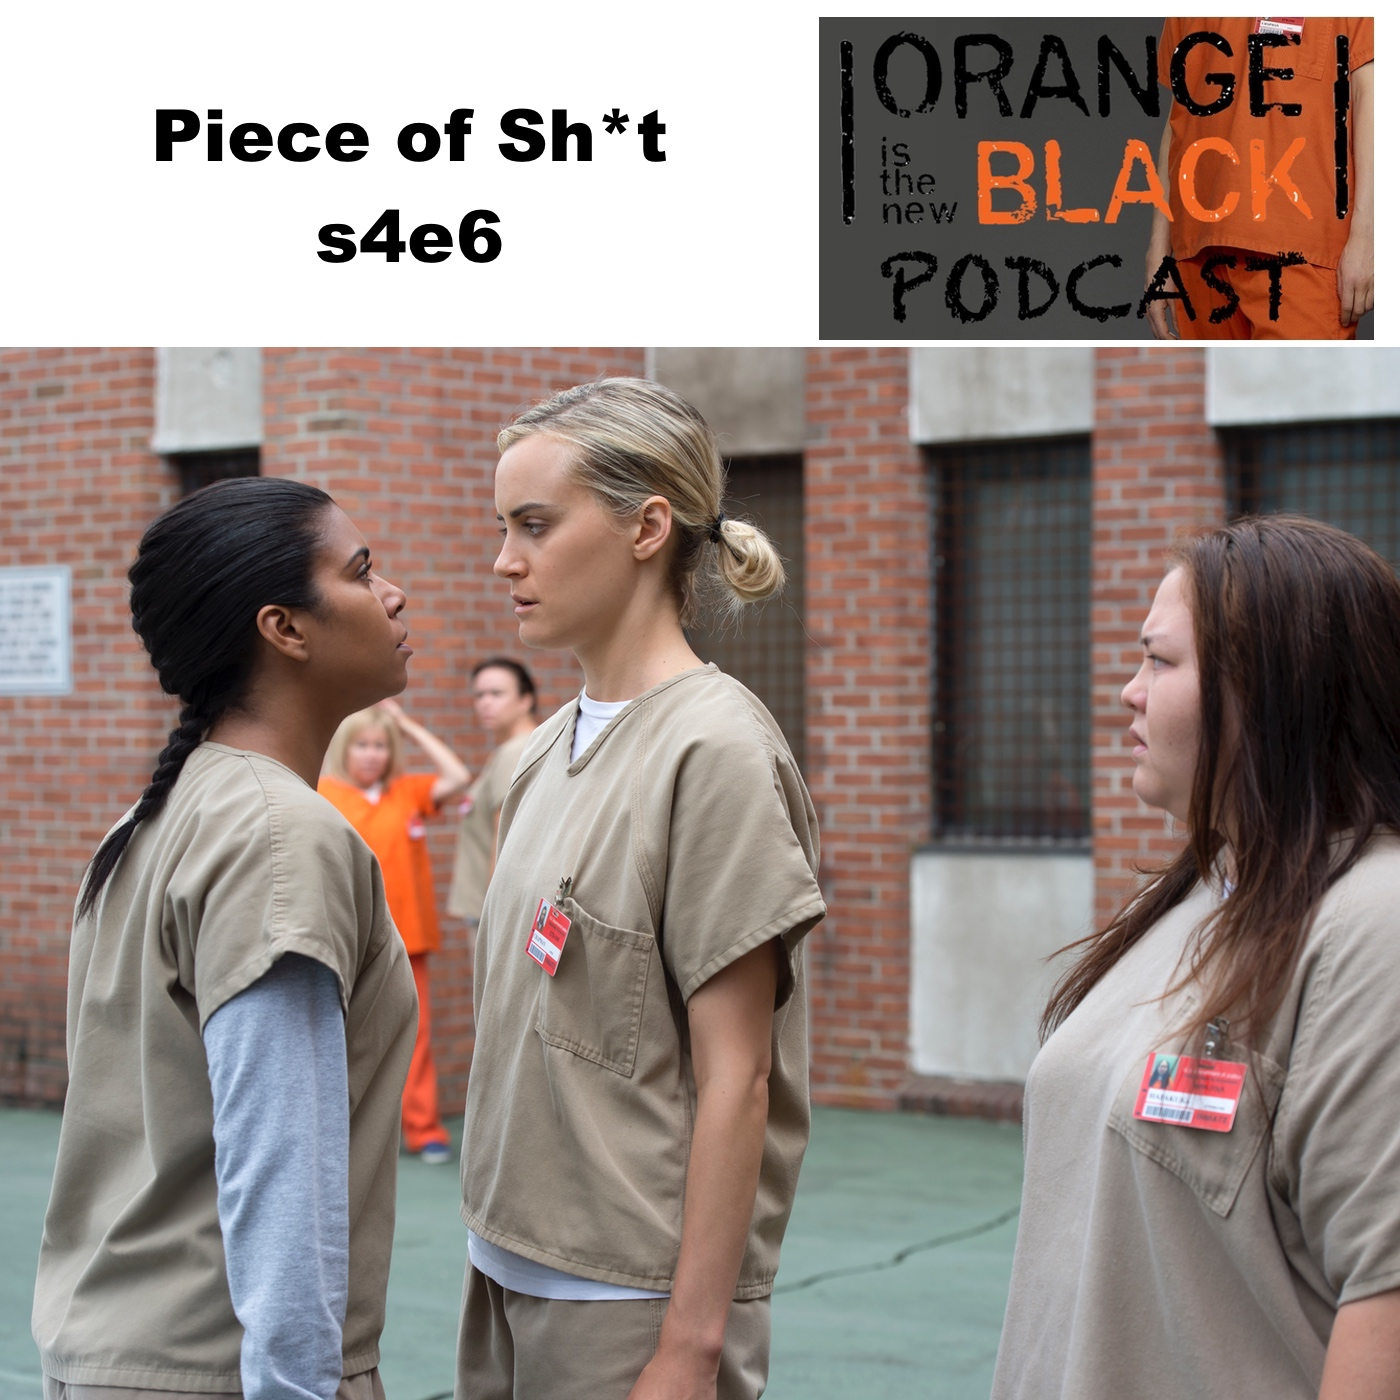 s4e6 Piece of Sh.. - Orange is the New Black Podcast